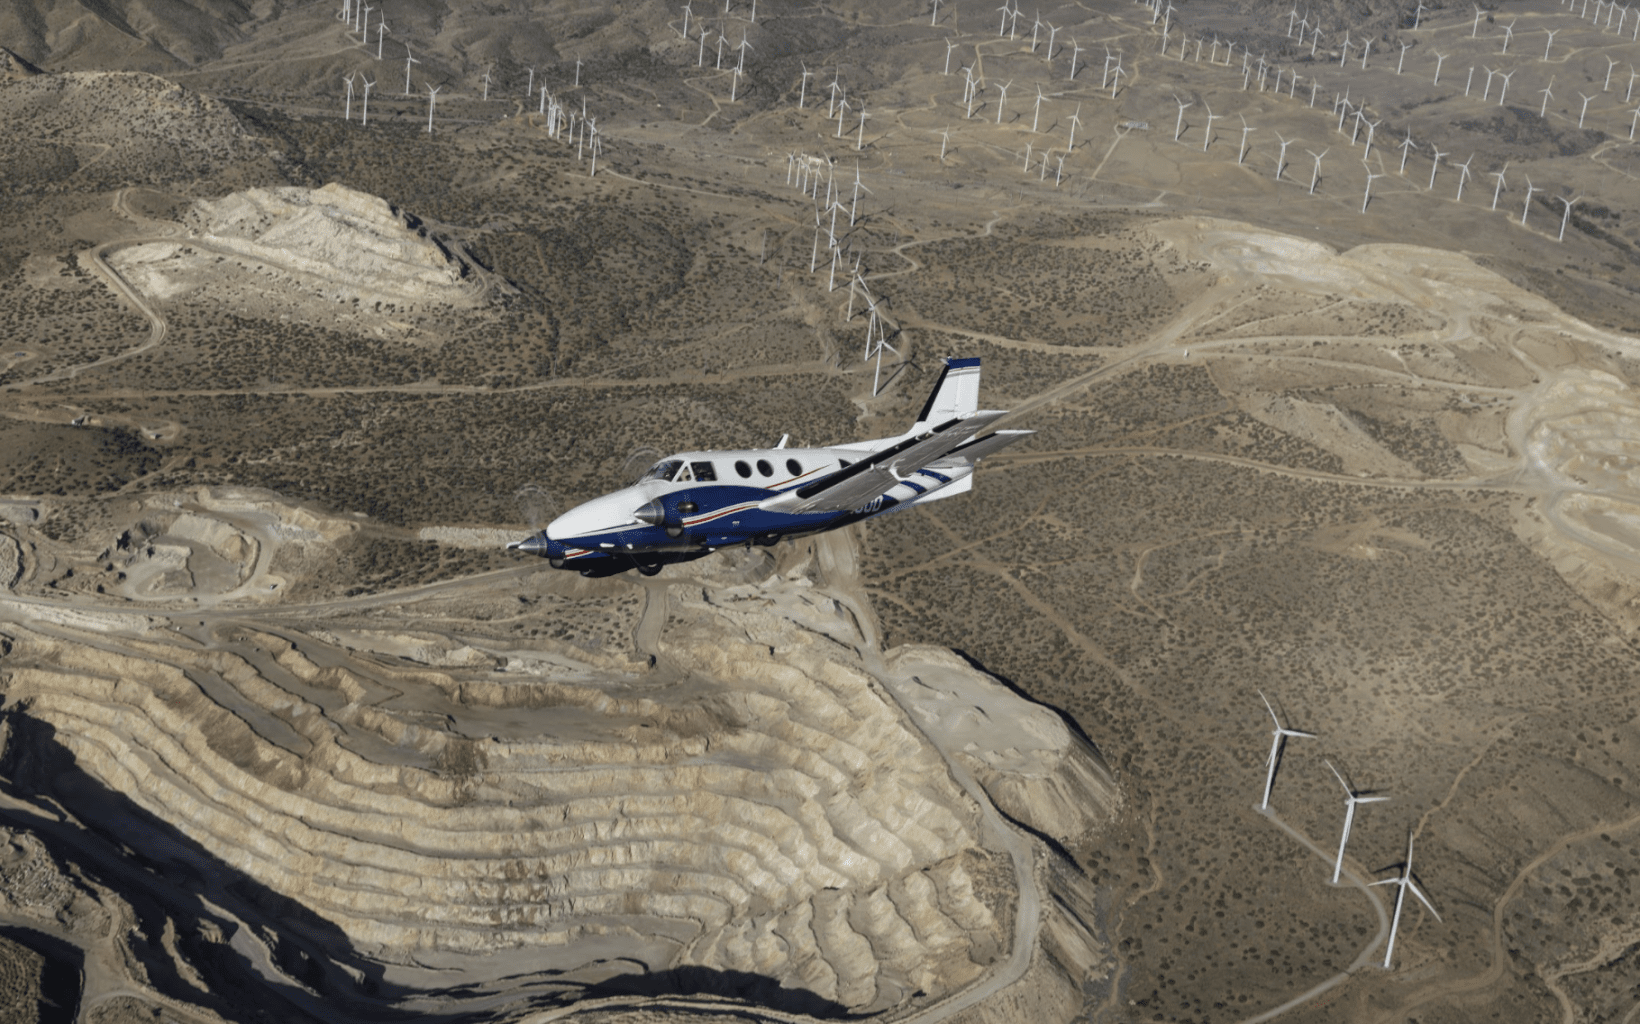 A King Air aircraft banks over the Mojave desert.